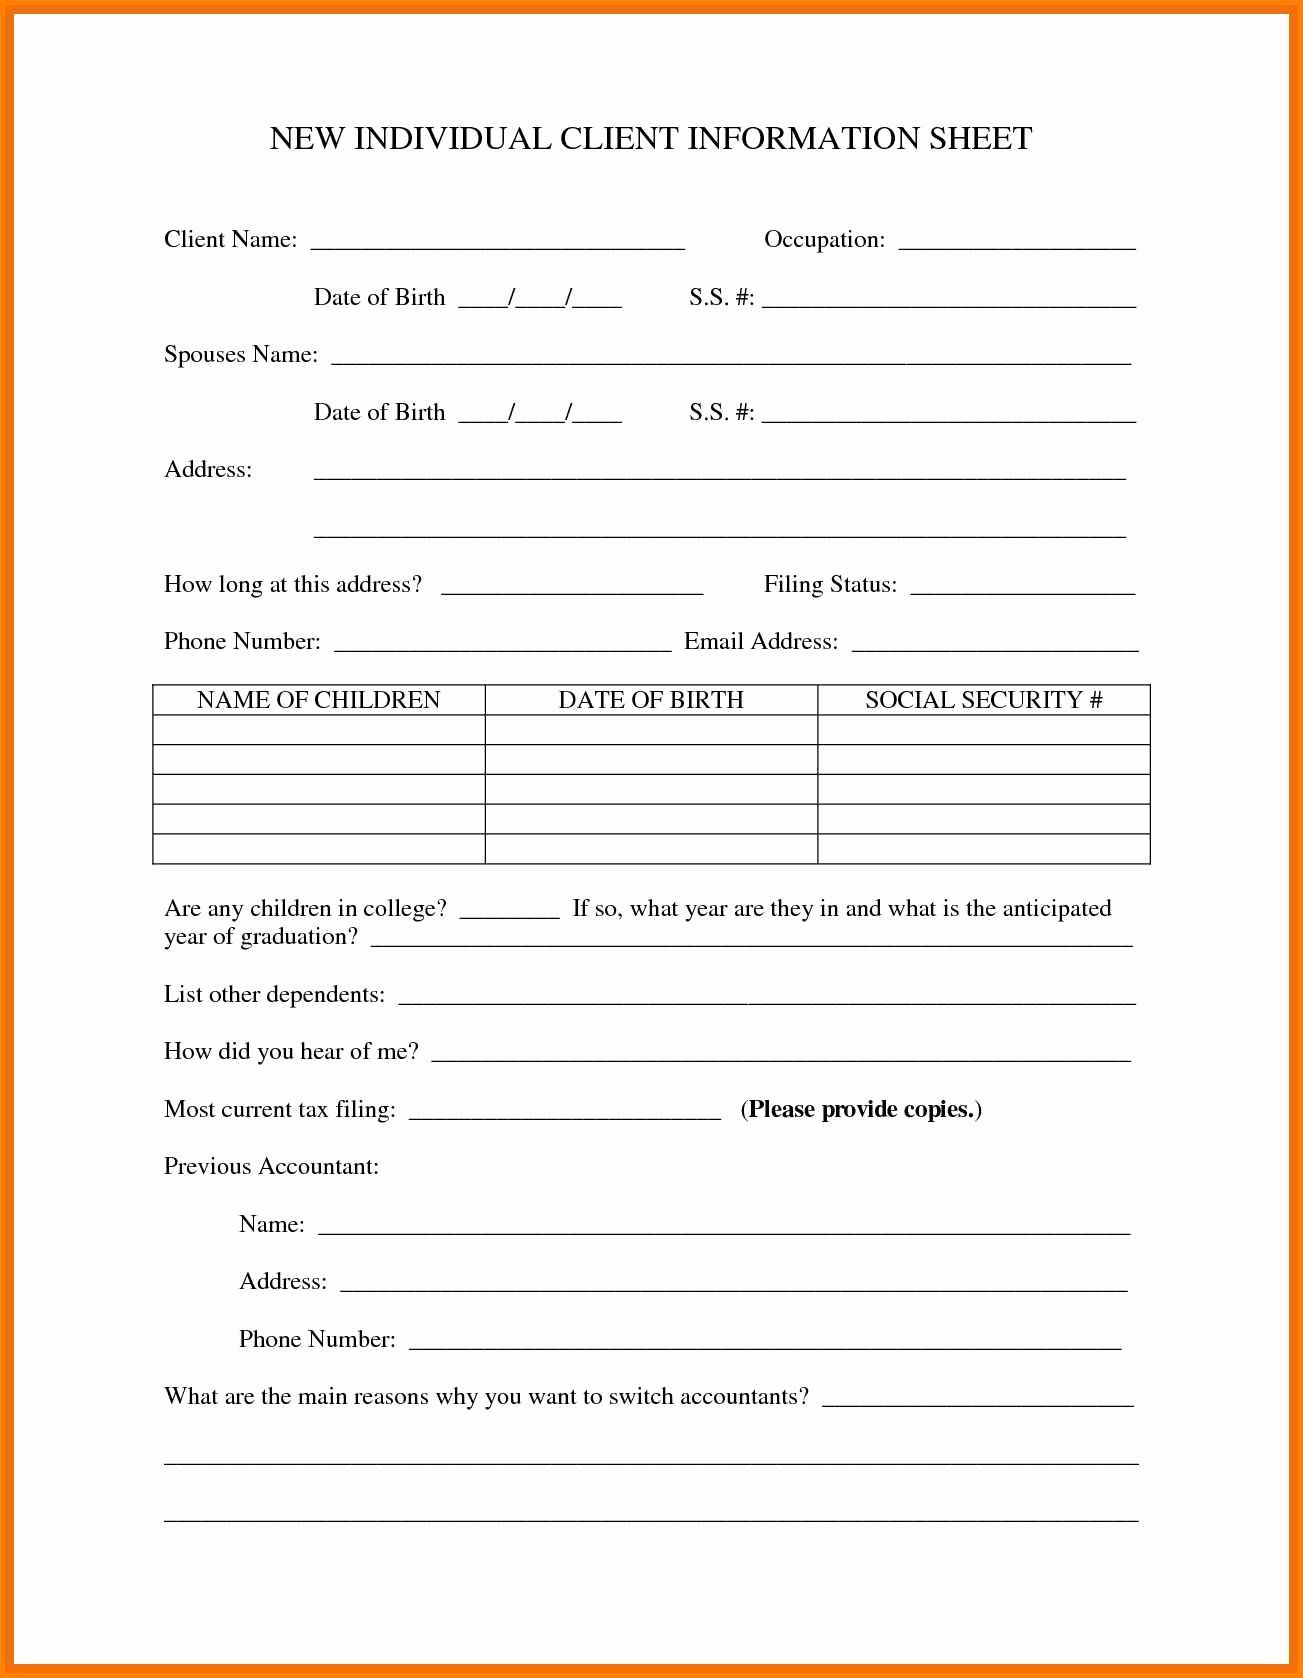 Fresh New Customer Form Template Free In 2020 Templates Sample